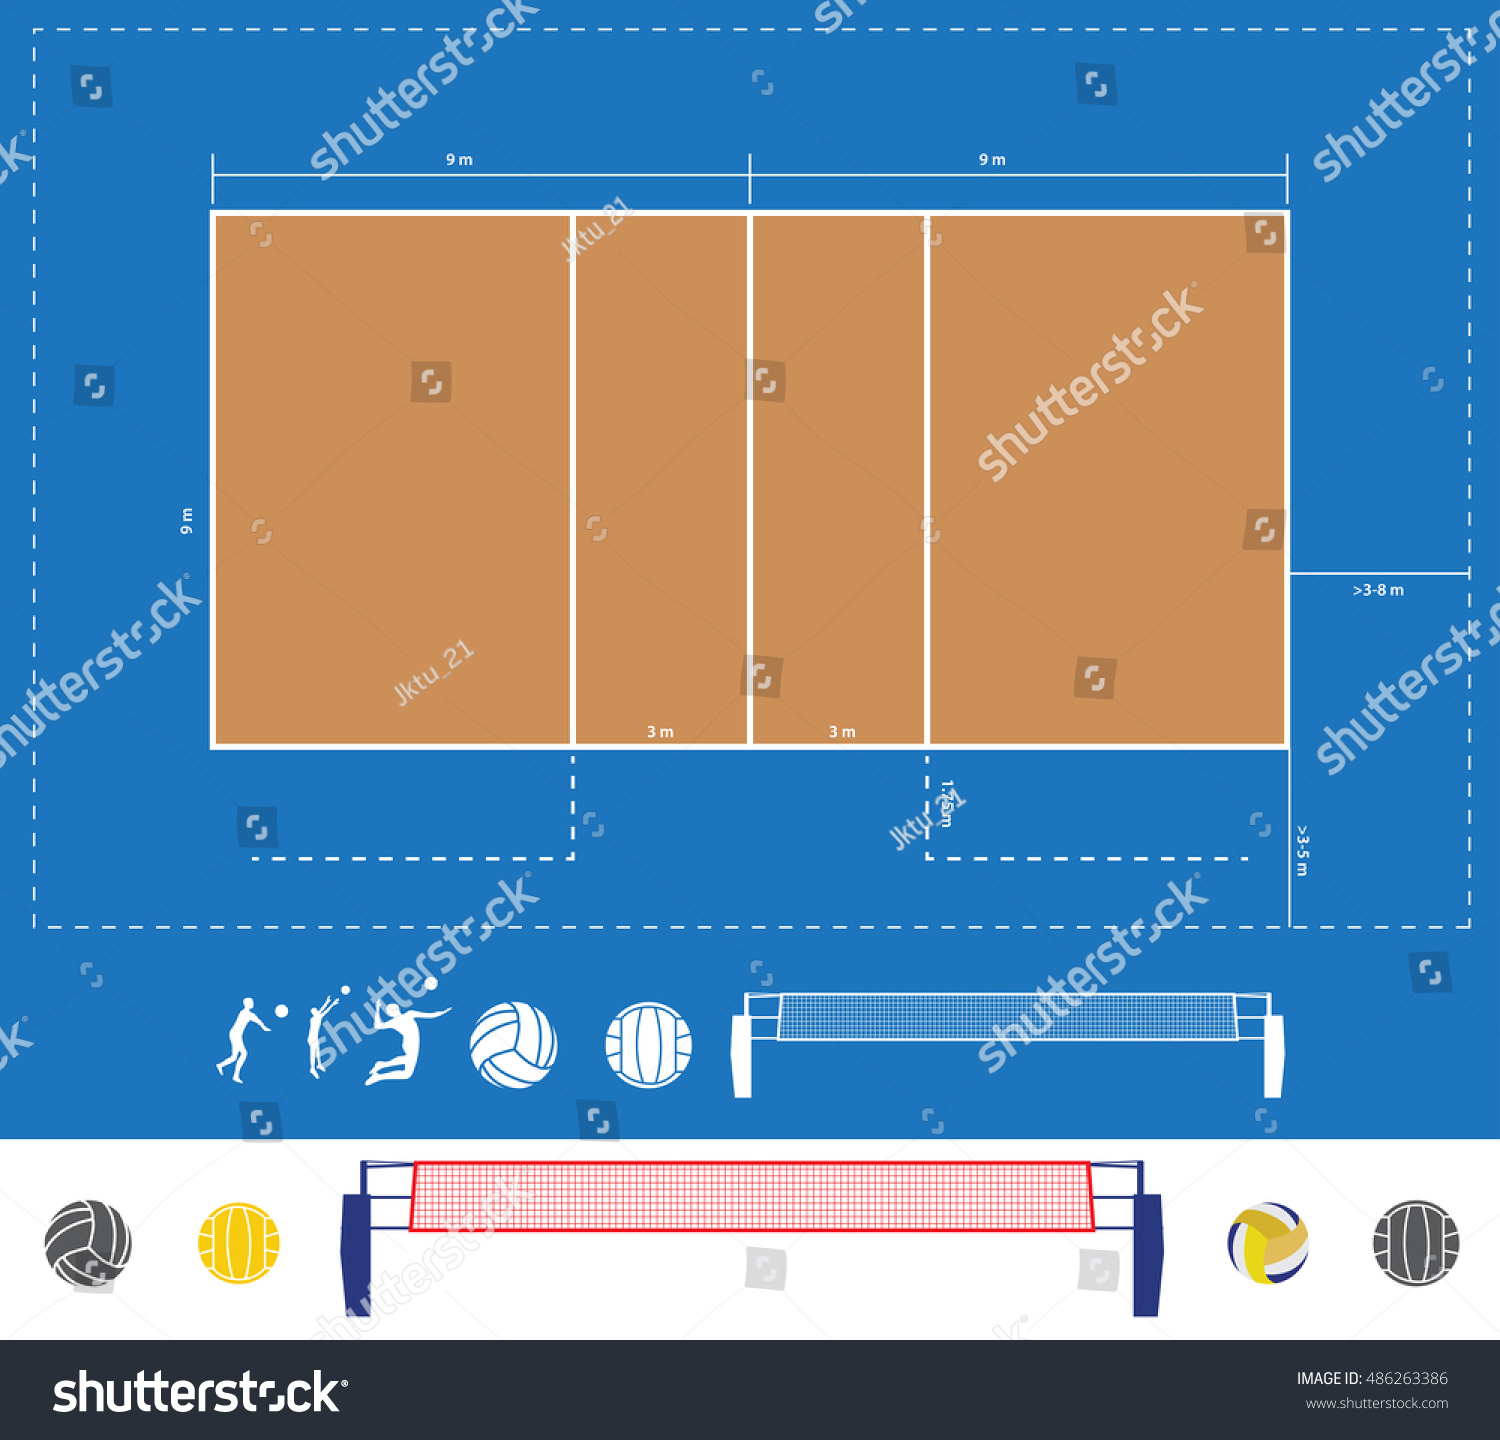 dodge wiring diagrams court diions of volleyball  dodge